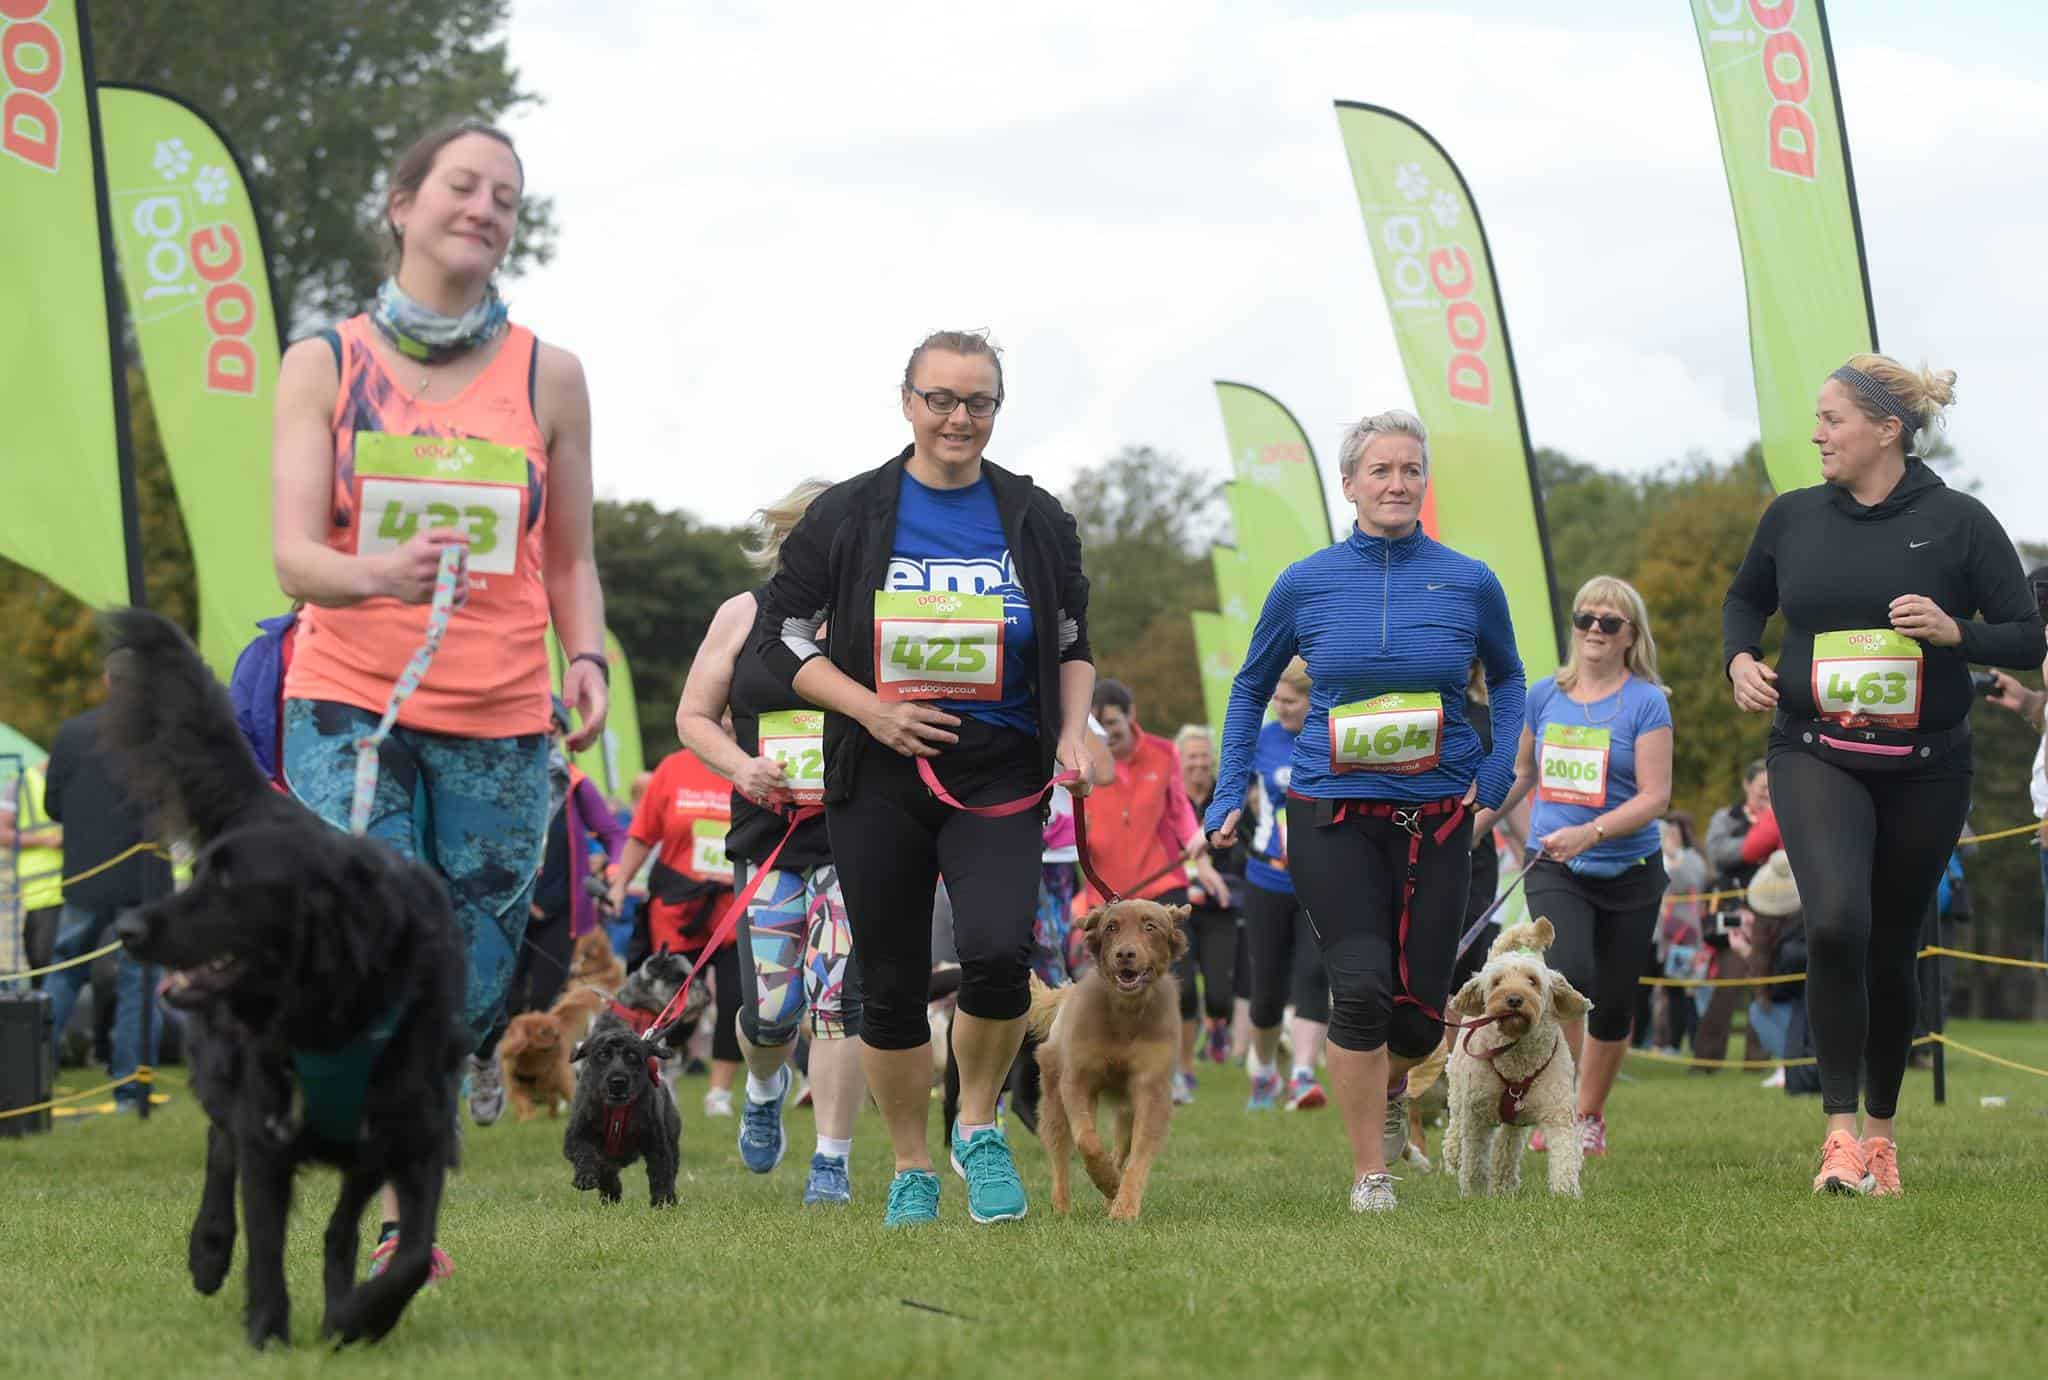 Dog Jog Crystal Palace 2019